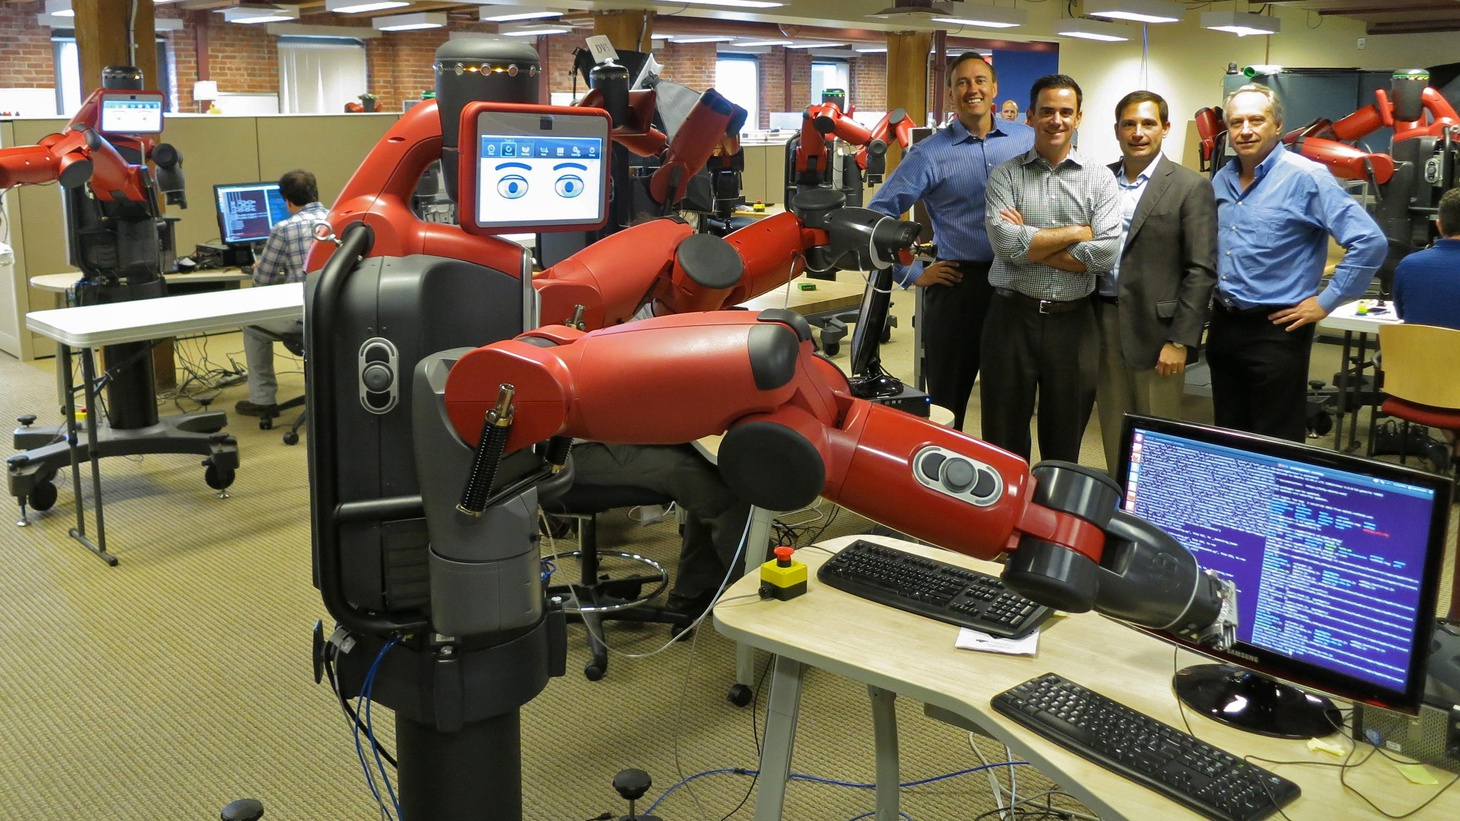 Robots are here to stay: in factories and homes — from real-world battlefields to popular culture. We talk about robotics and the increased interaction of robots with human beings.